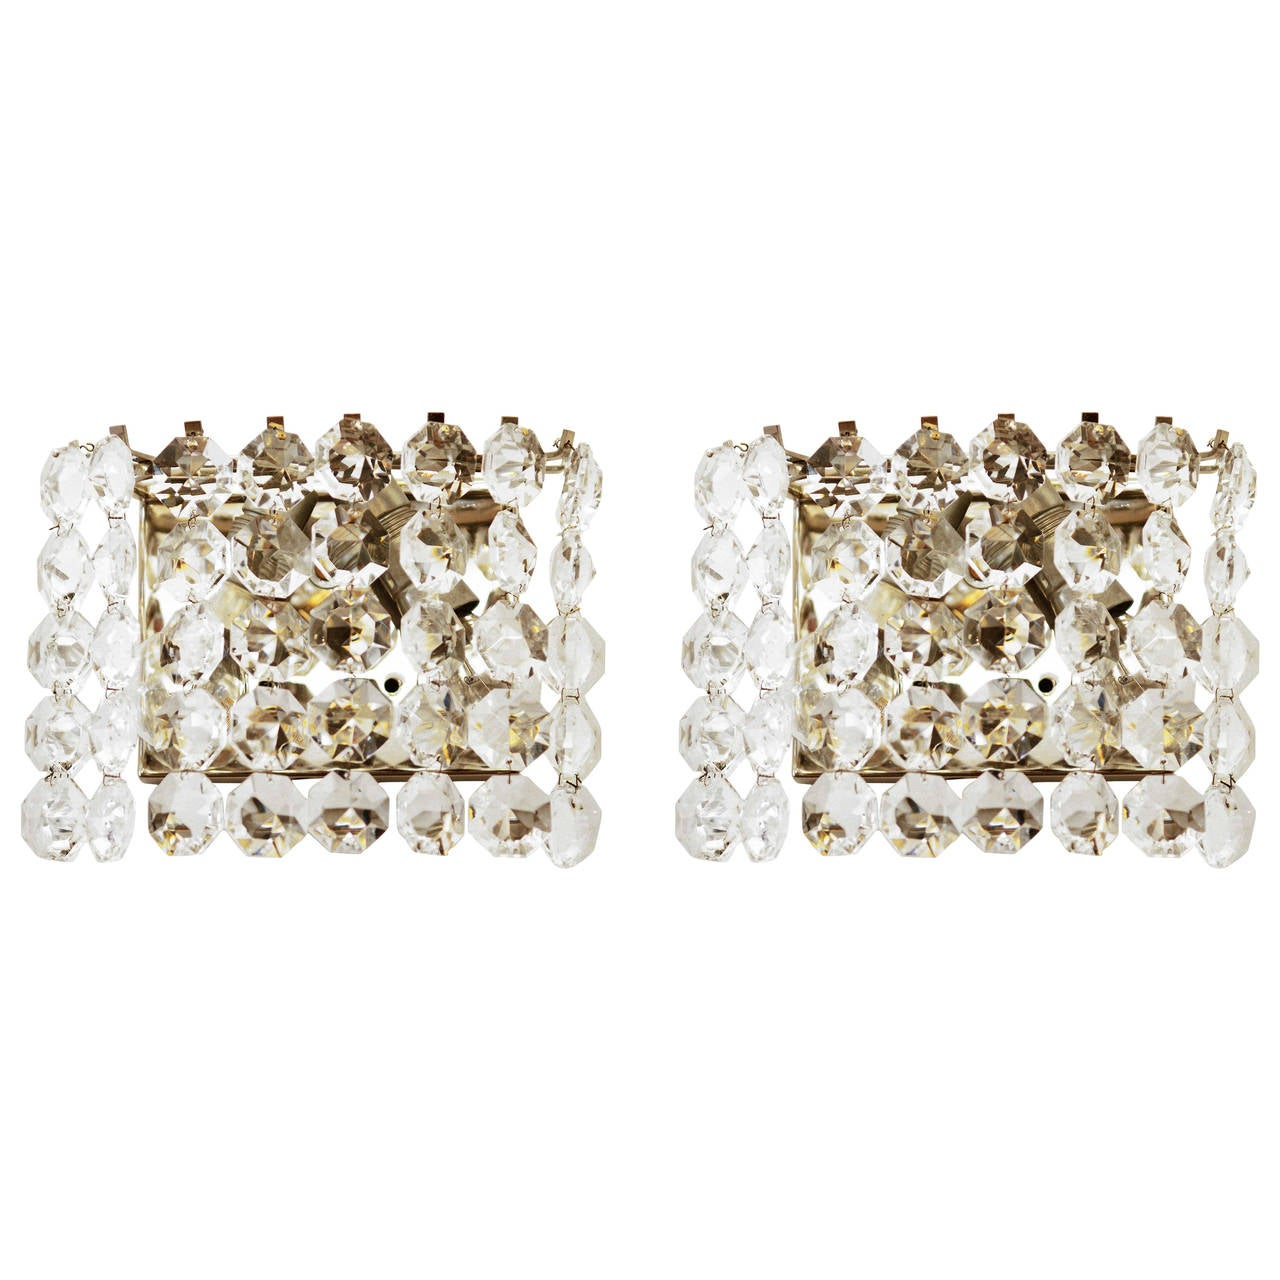 Pair of Austrian Crystal Sconces by Bakalowits and Sohne